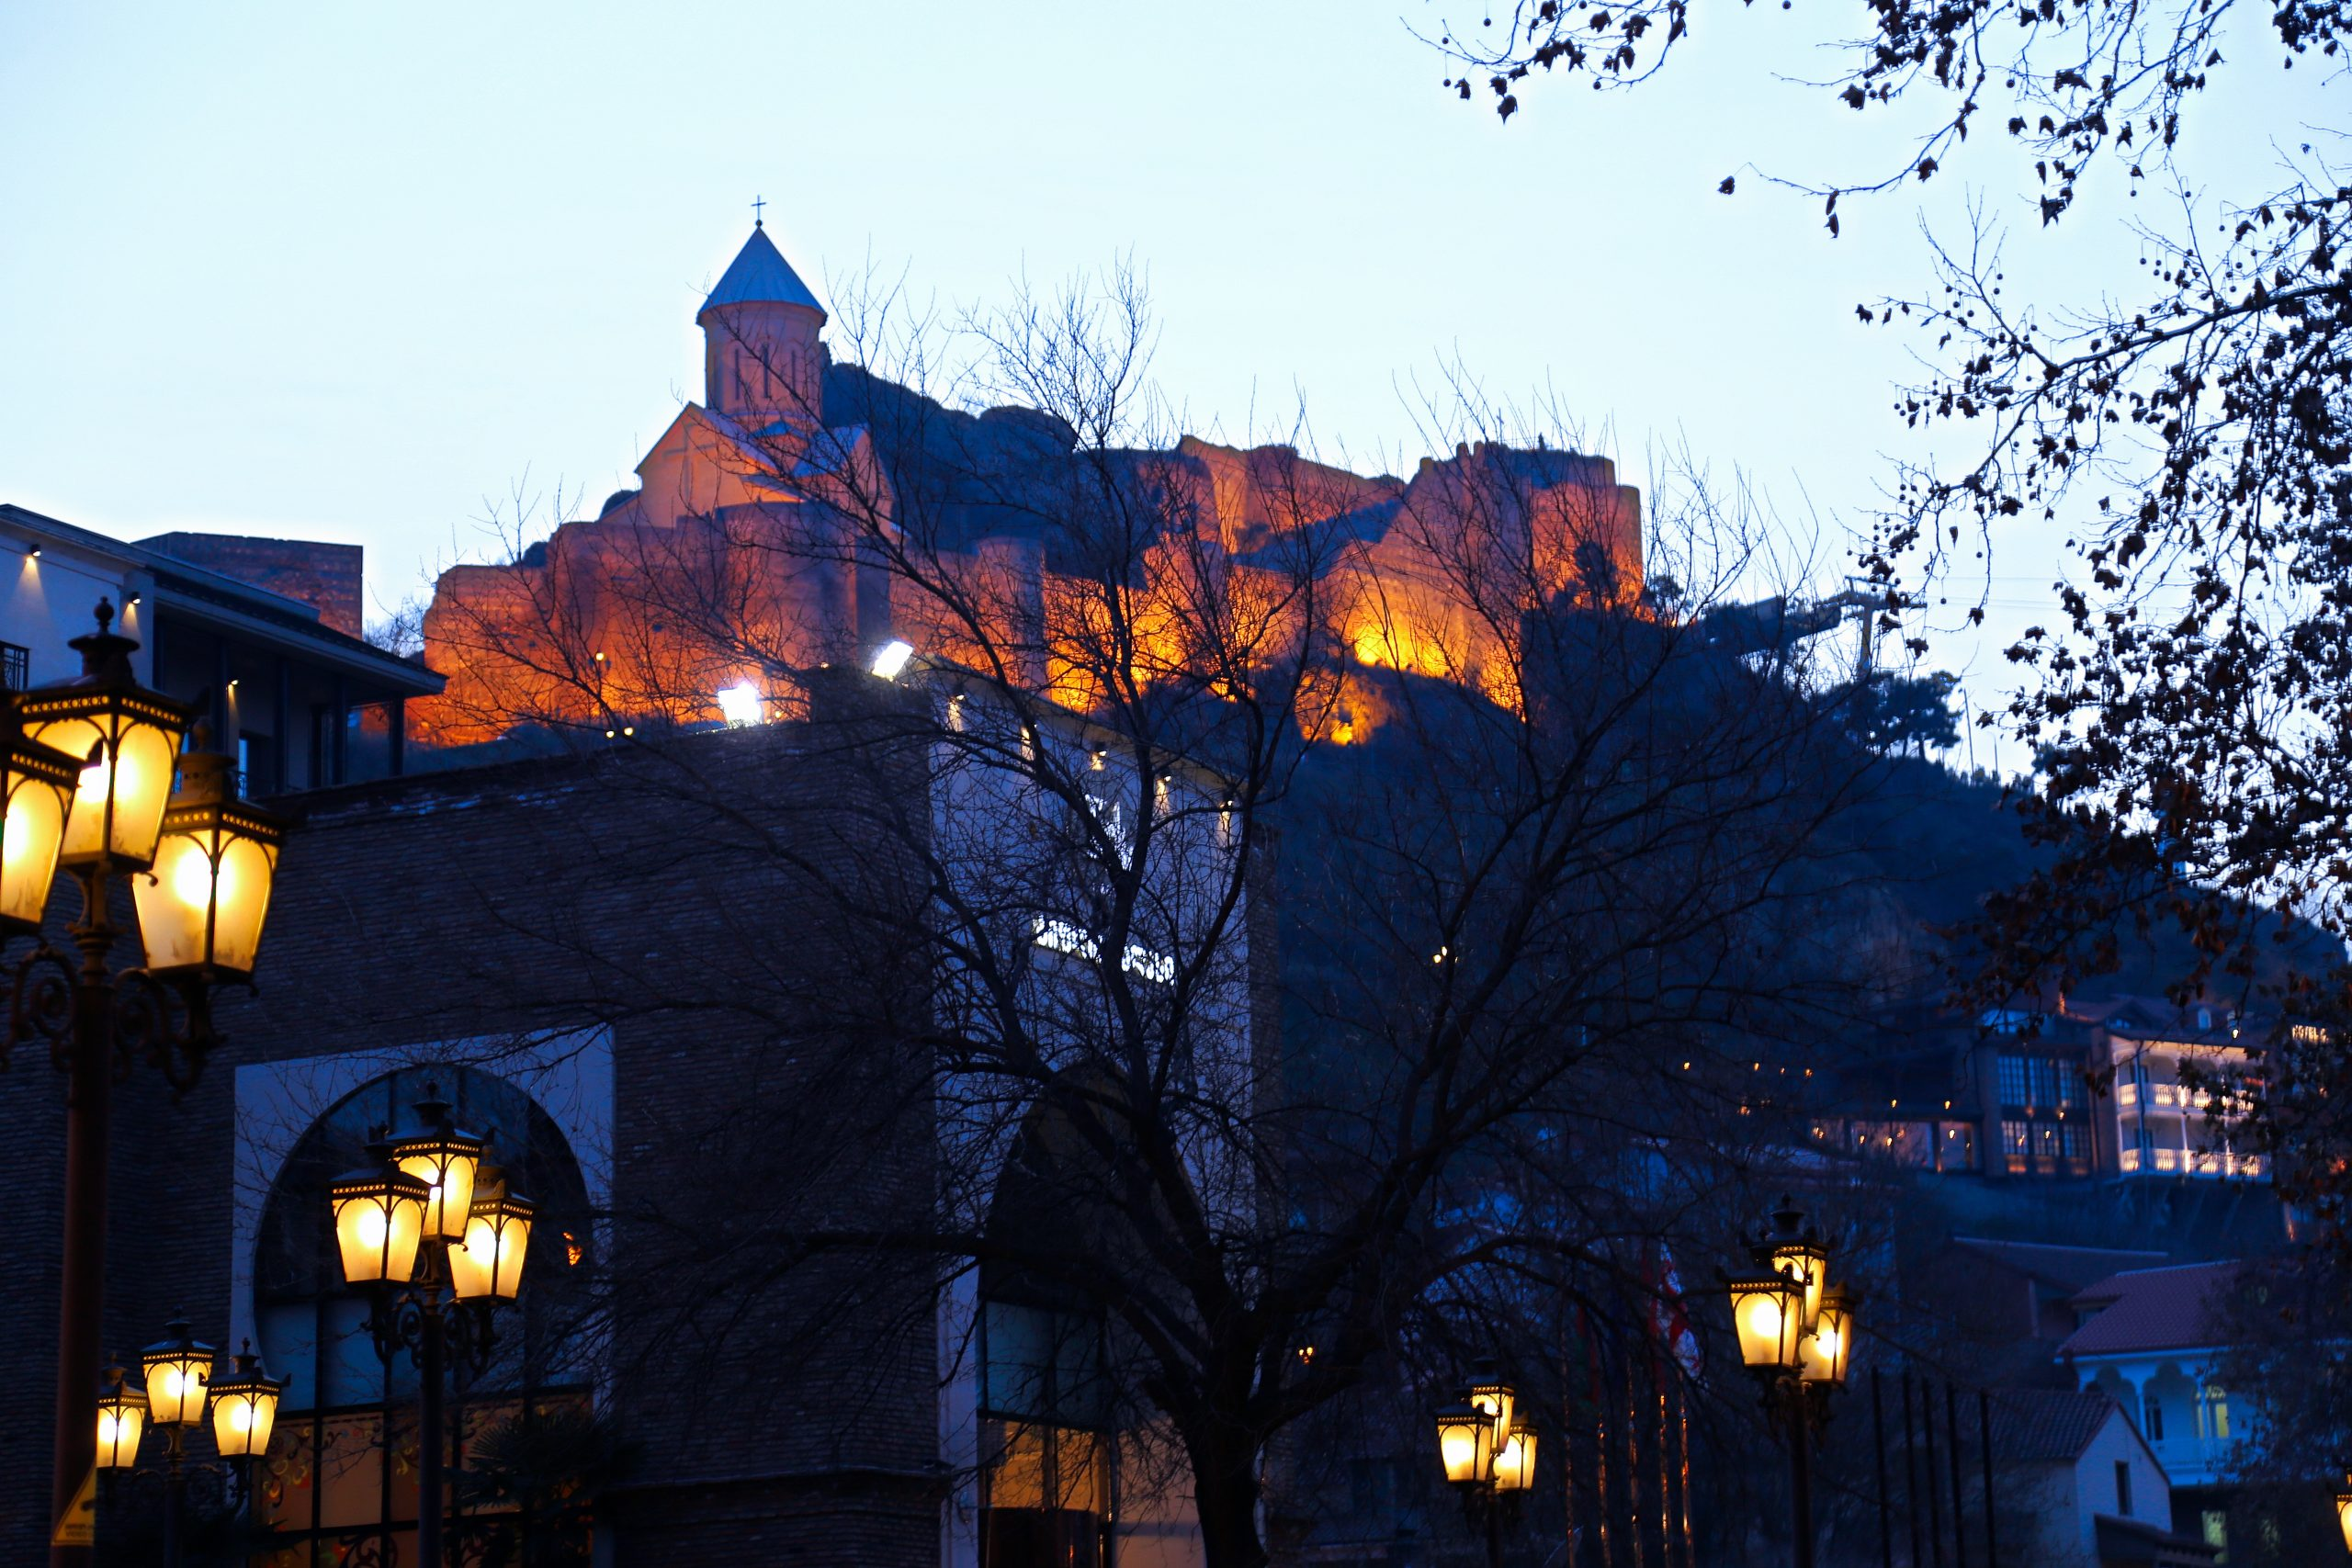 A castle's lighting in evening